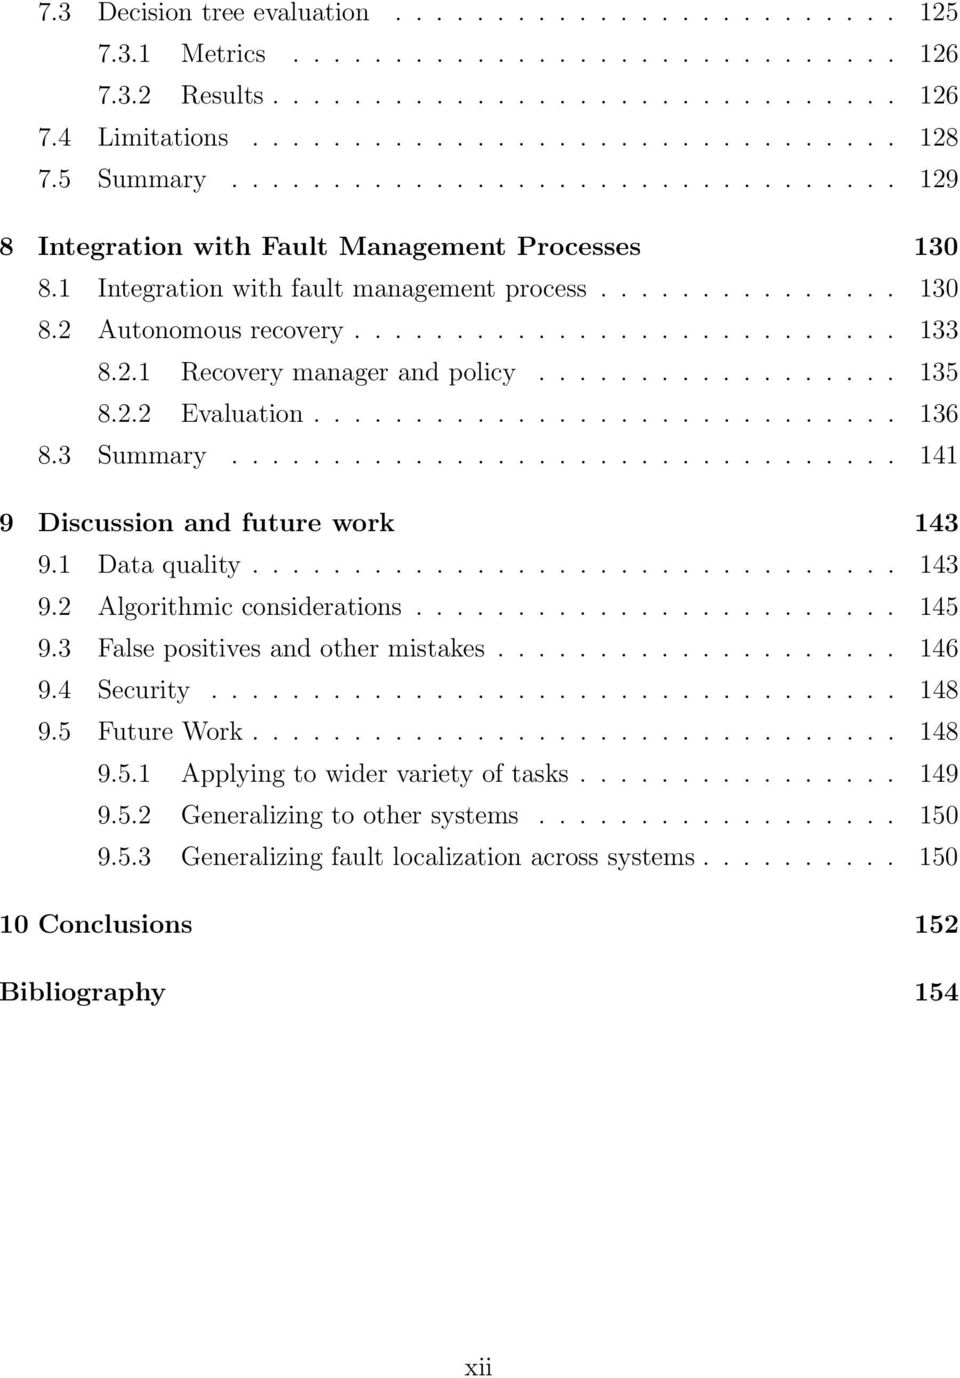 2.1 Recovery manager and policy.................. 135 8.2.2 Evaluation............................. 136 8.3 Summary................................. 141 9 Discussion and future work 143 9.